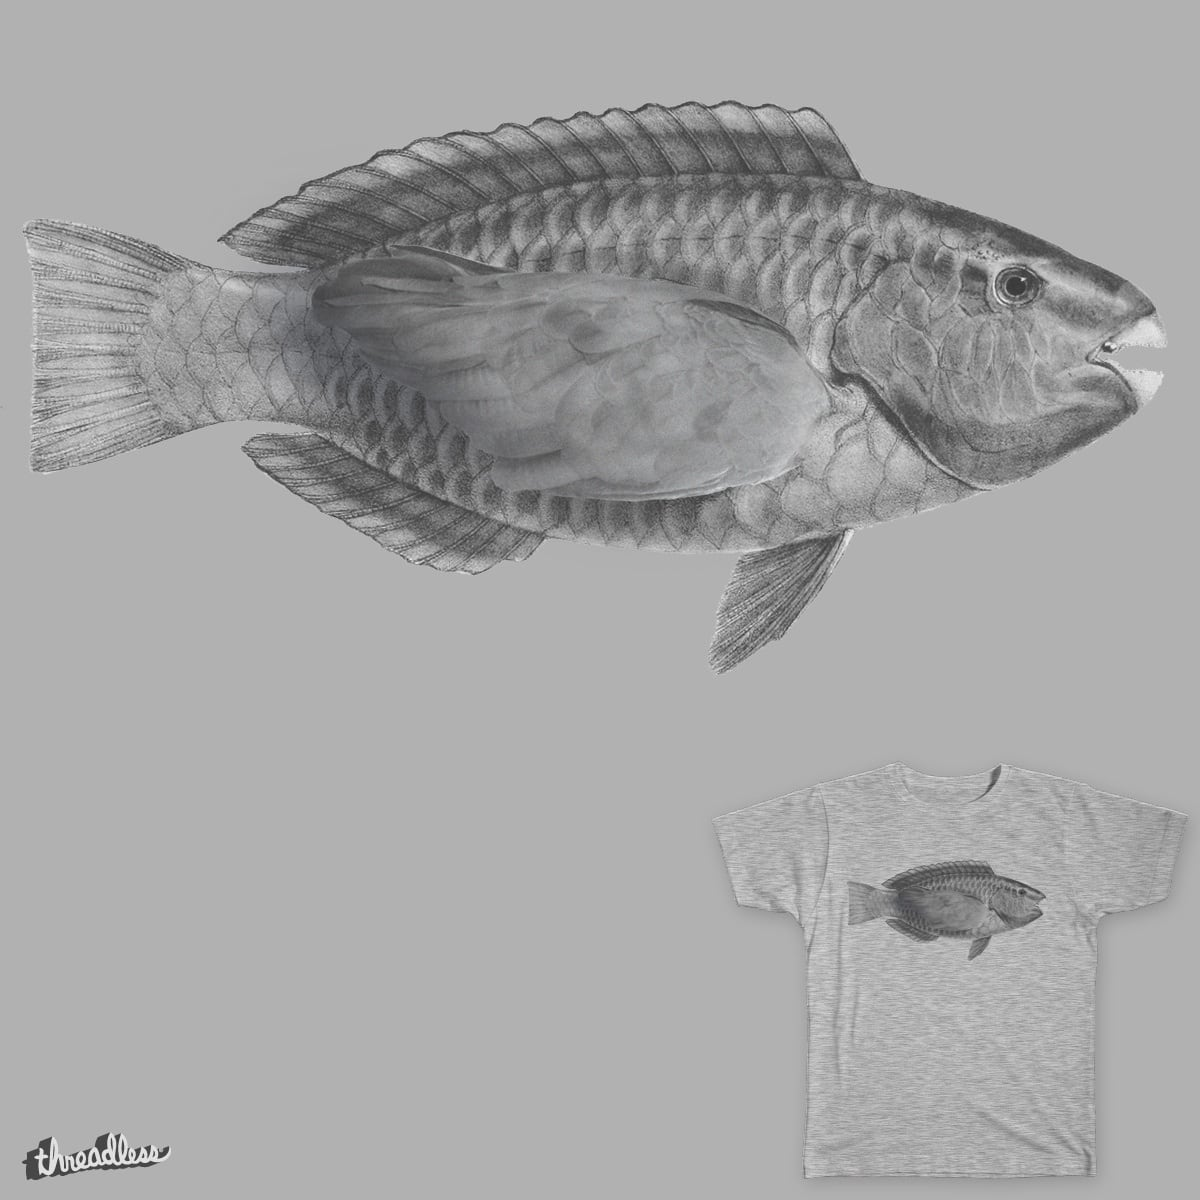 Parrotfish by Cavity on Threadless